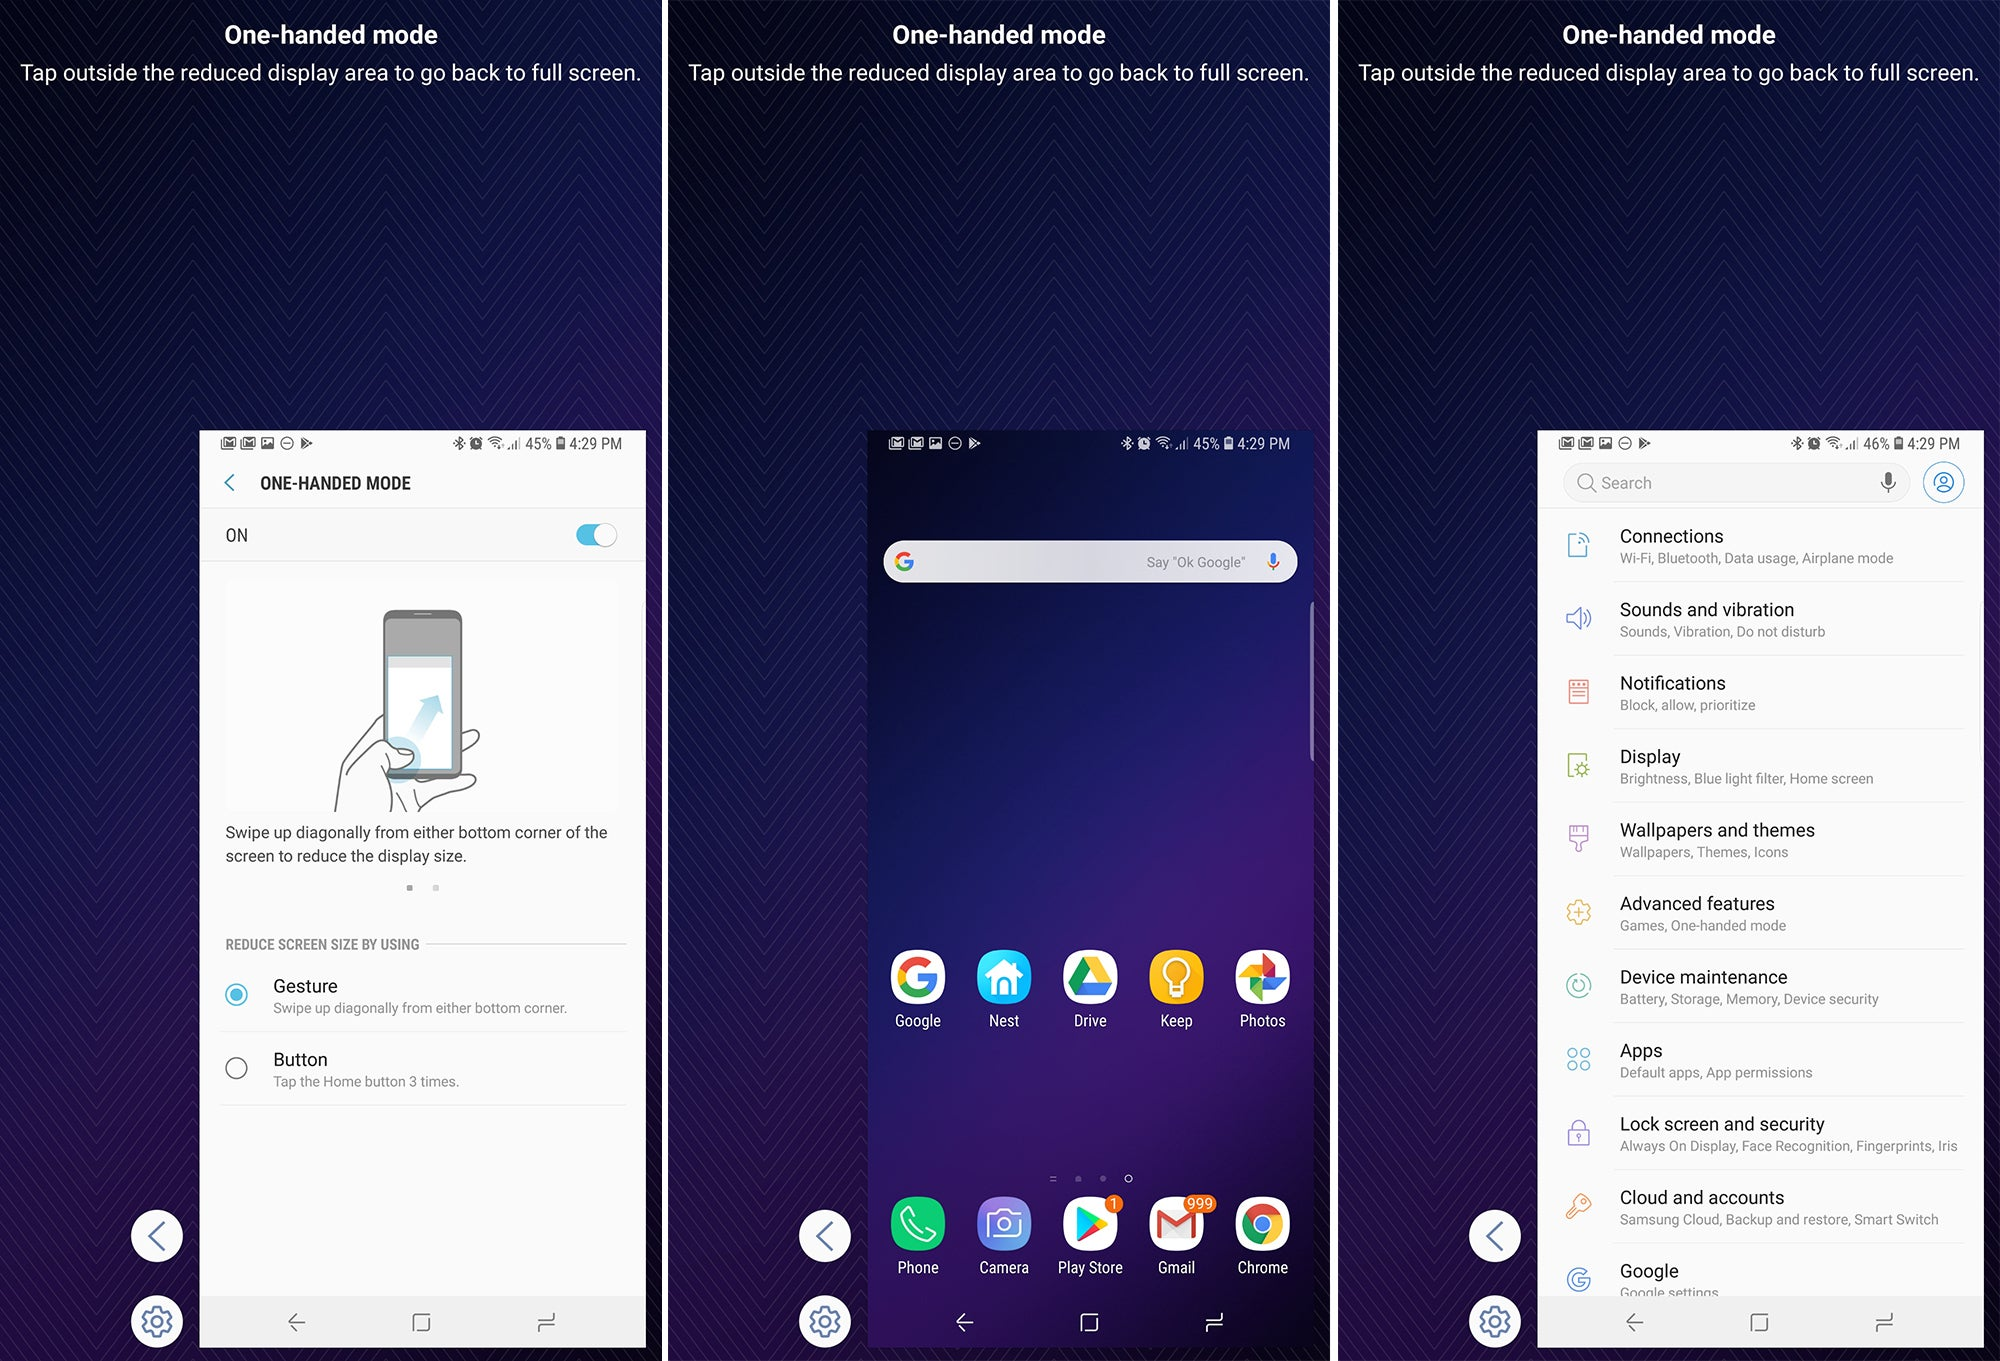 Samsung Galaxy S9: The best tips and tricks